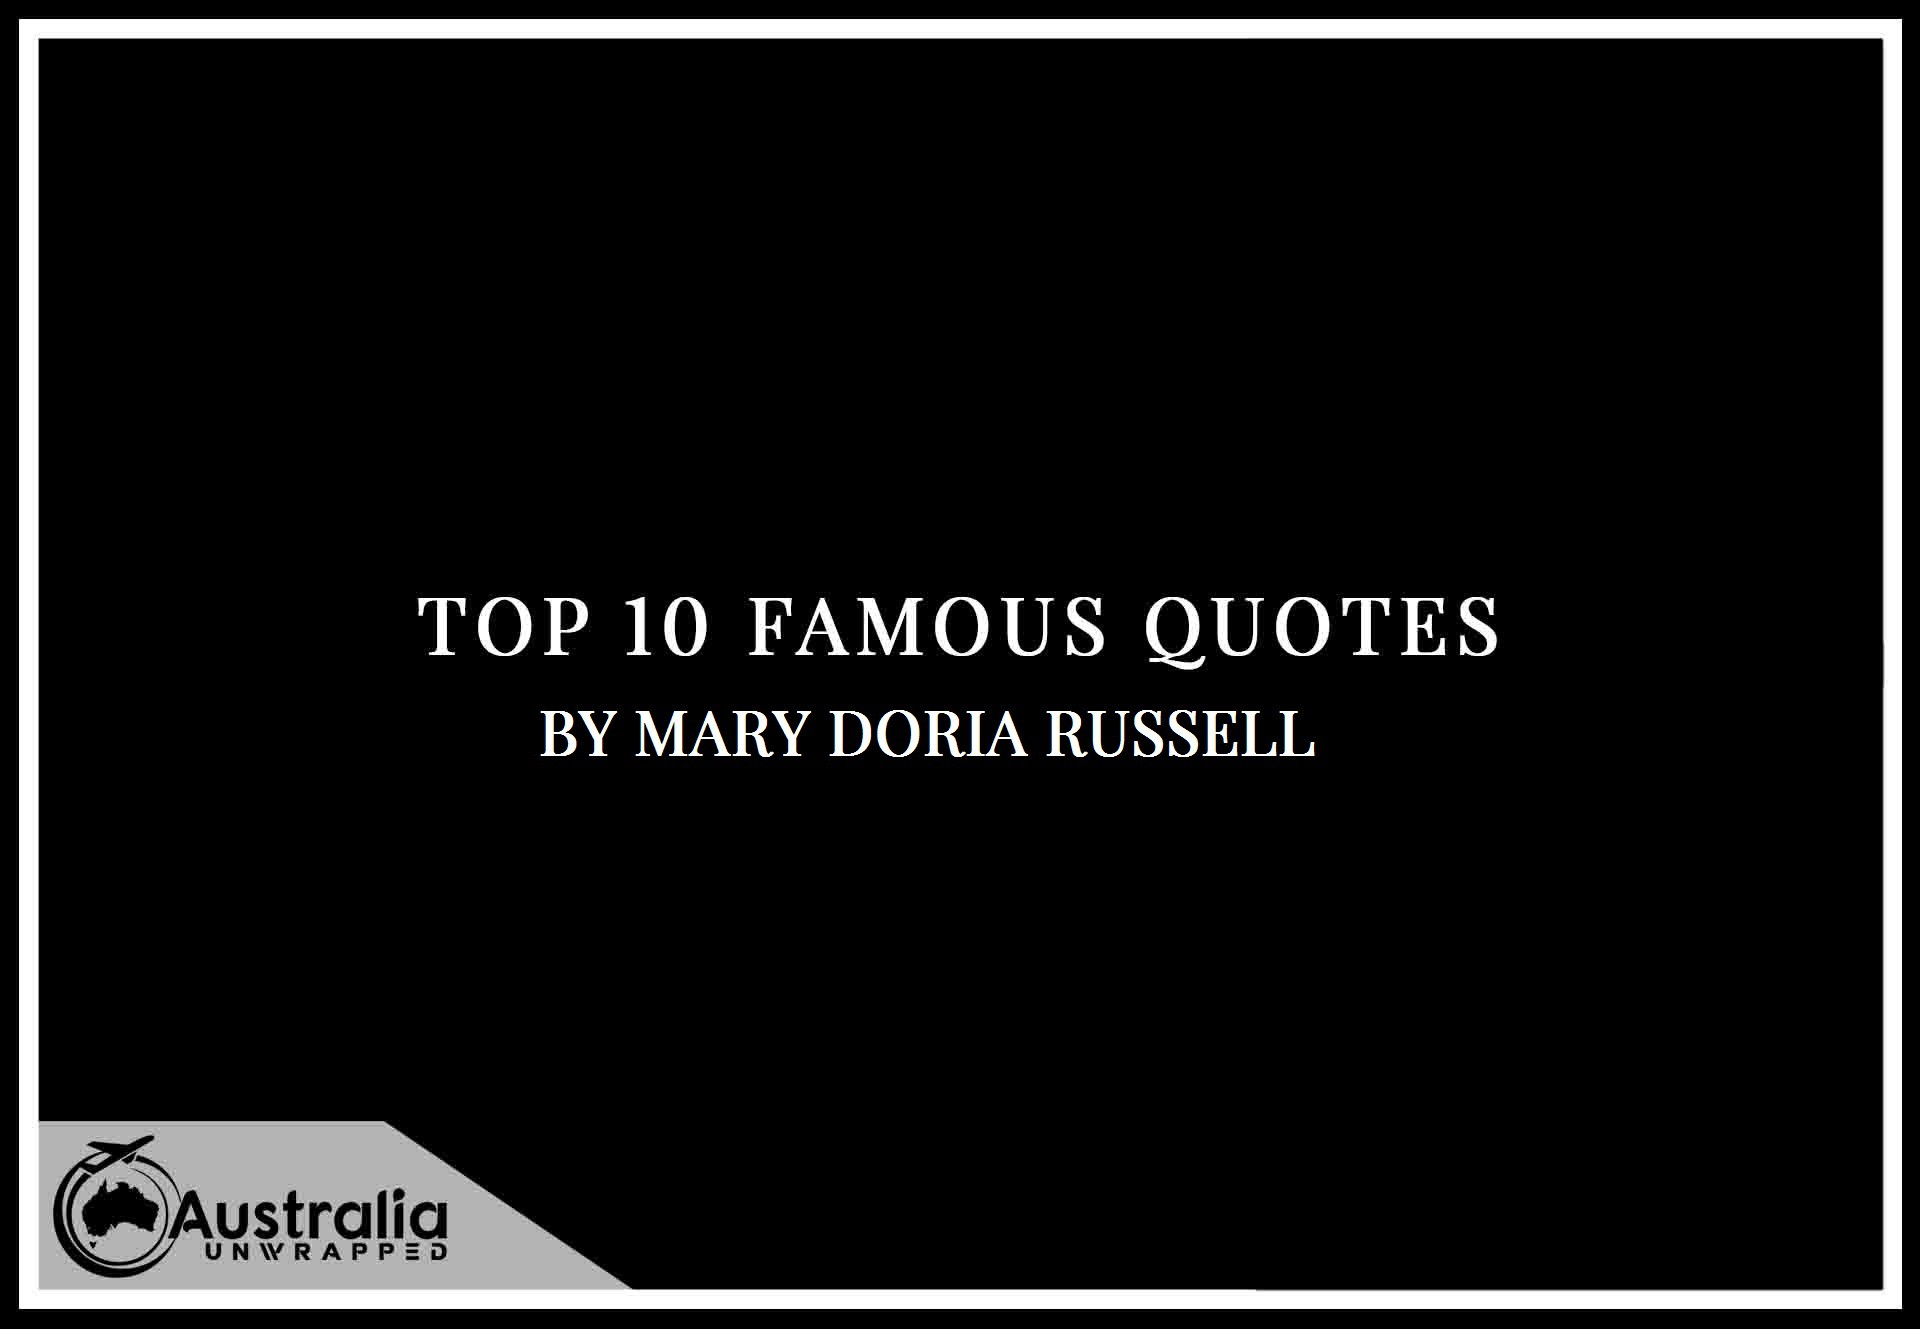 Mary Doria Russell's Top 10 Popular and Famous Quotes